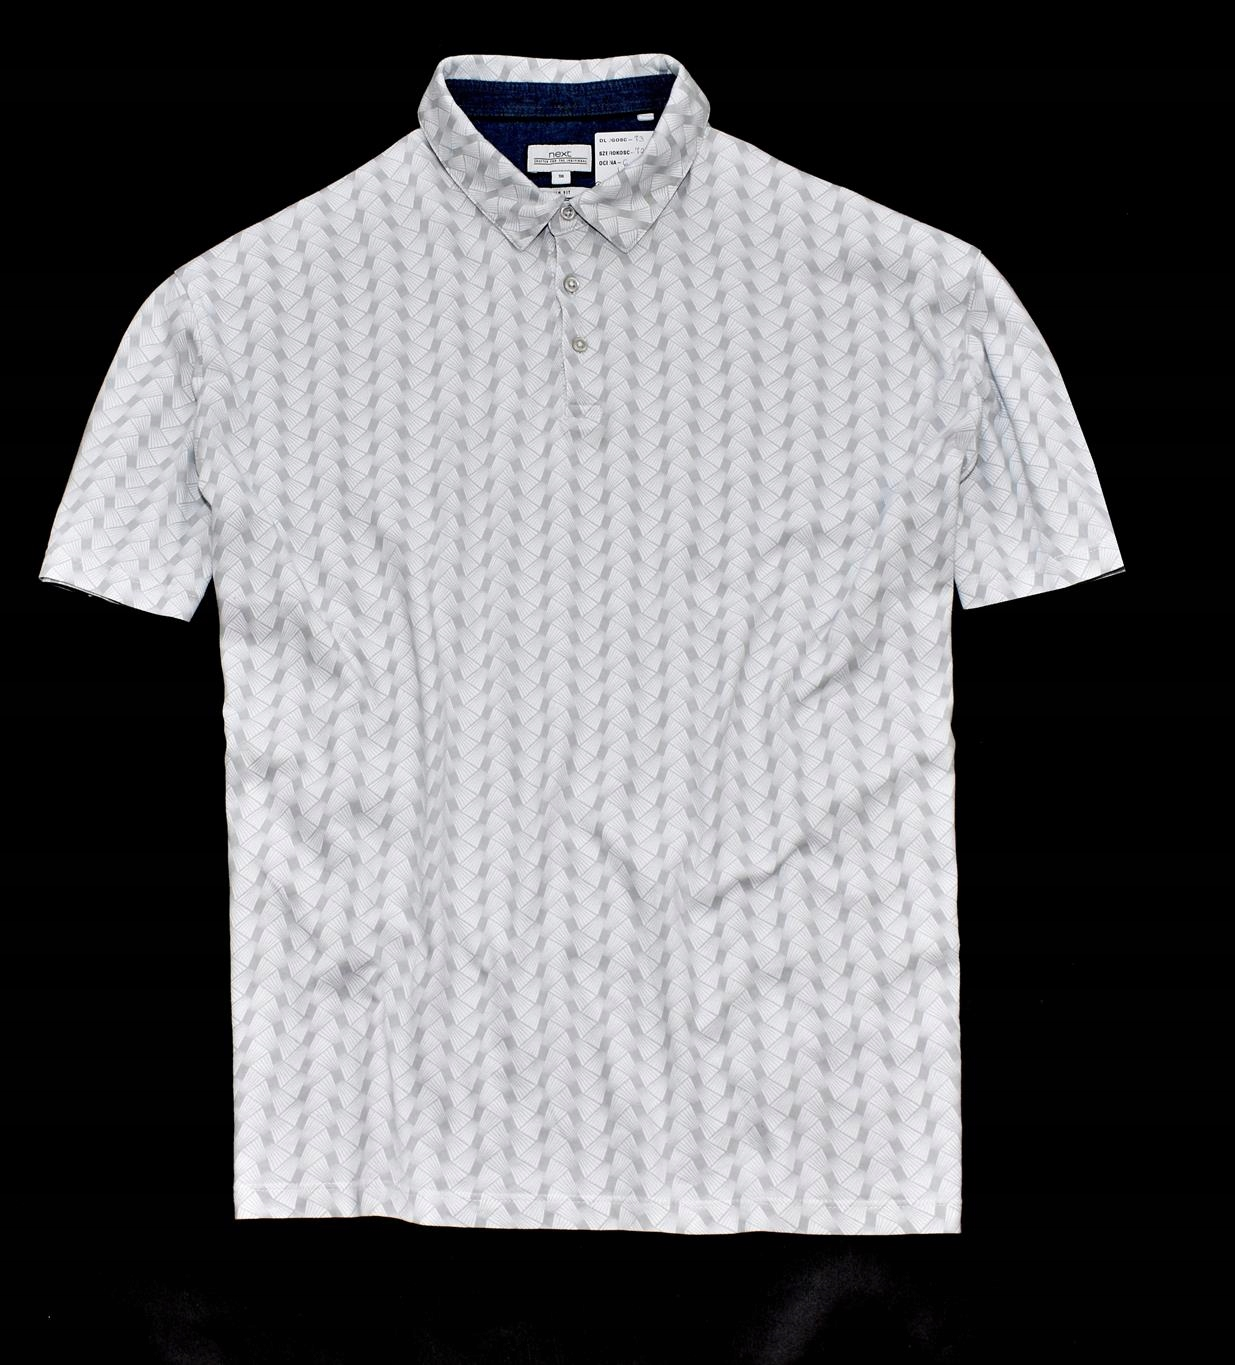 MM 98 NEXT_TRENDY SLIM FIT OVERPRINT POLO_3XL